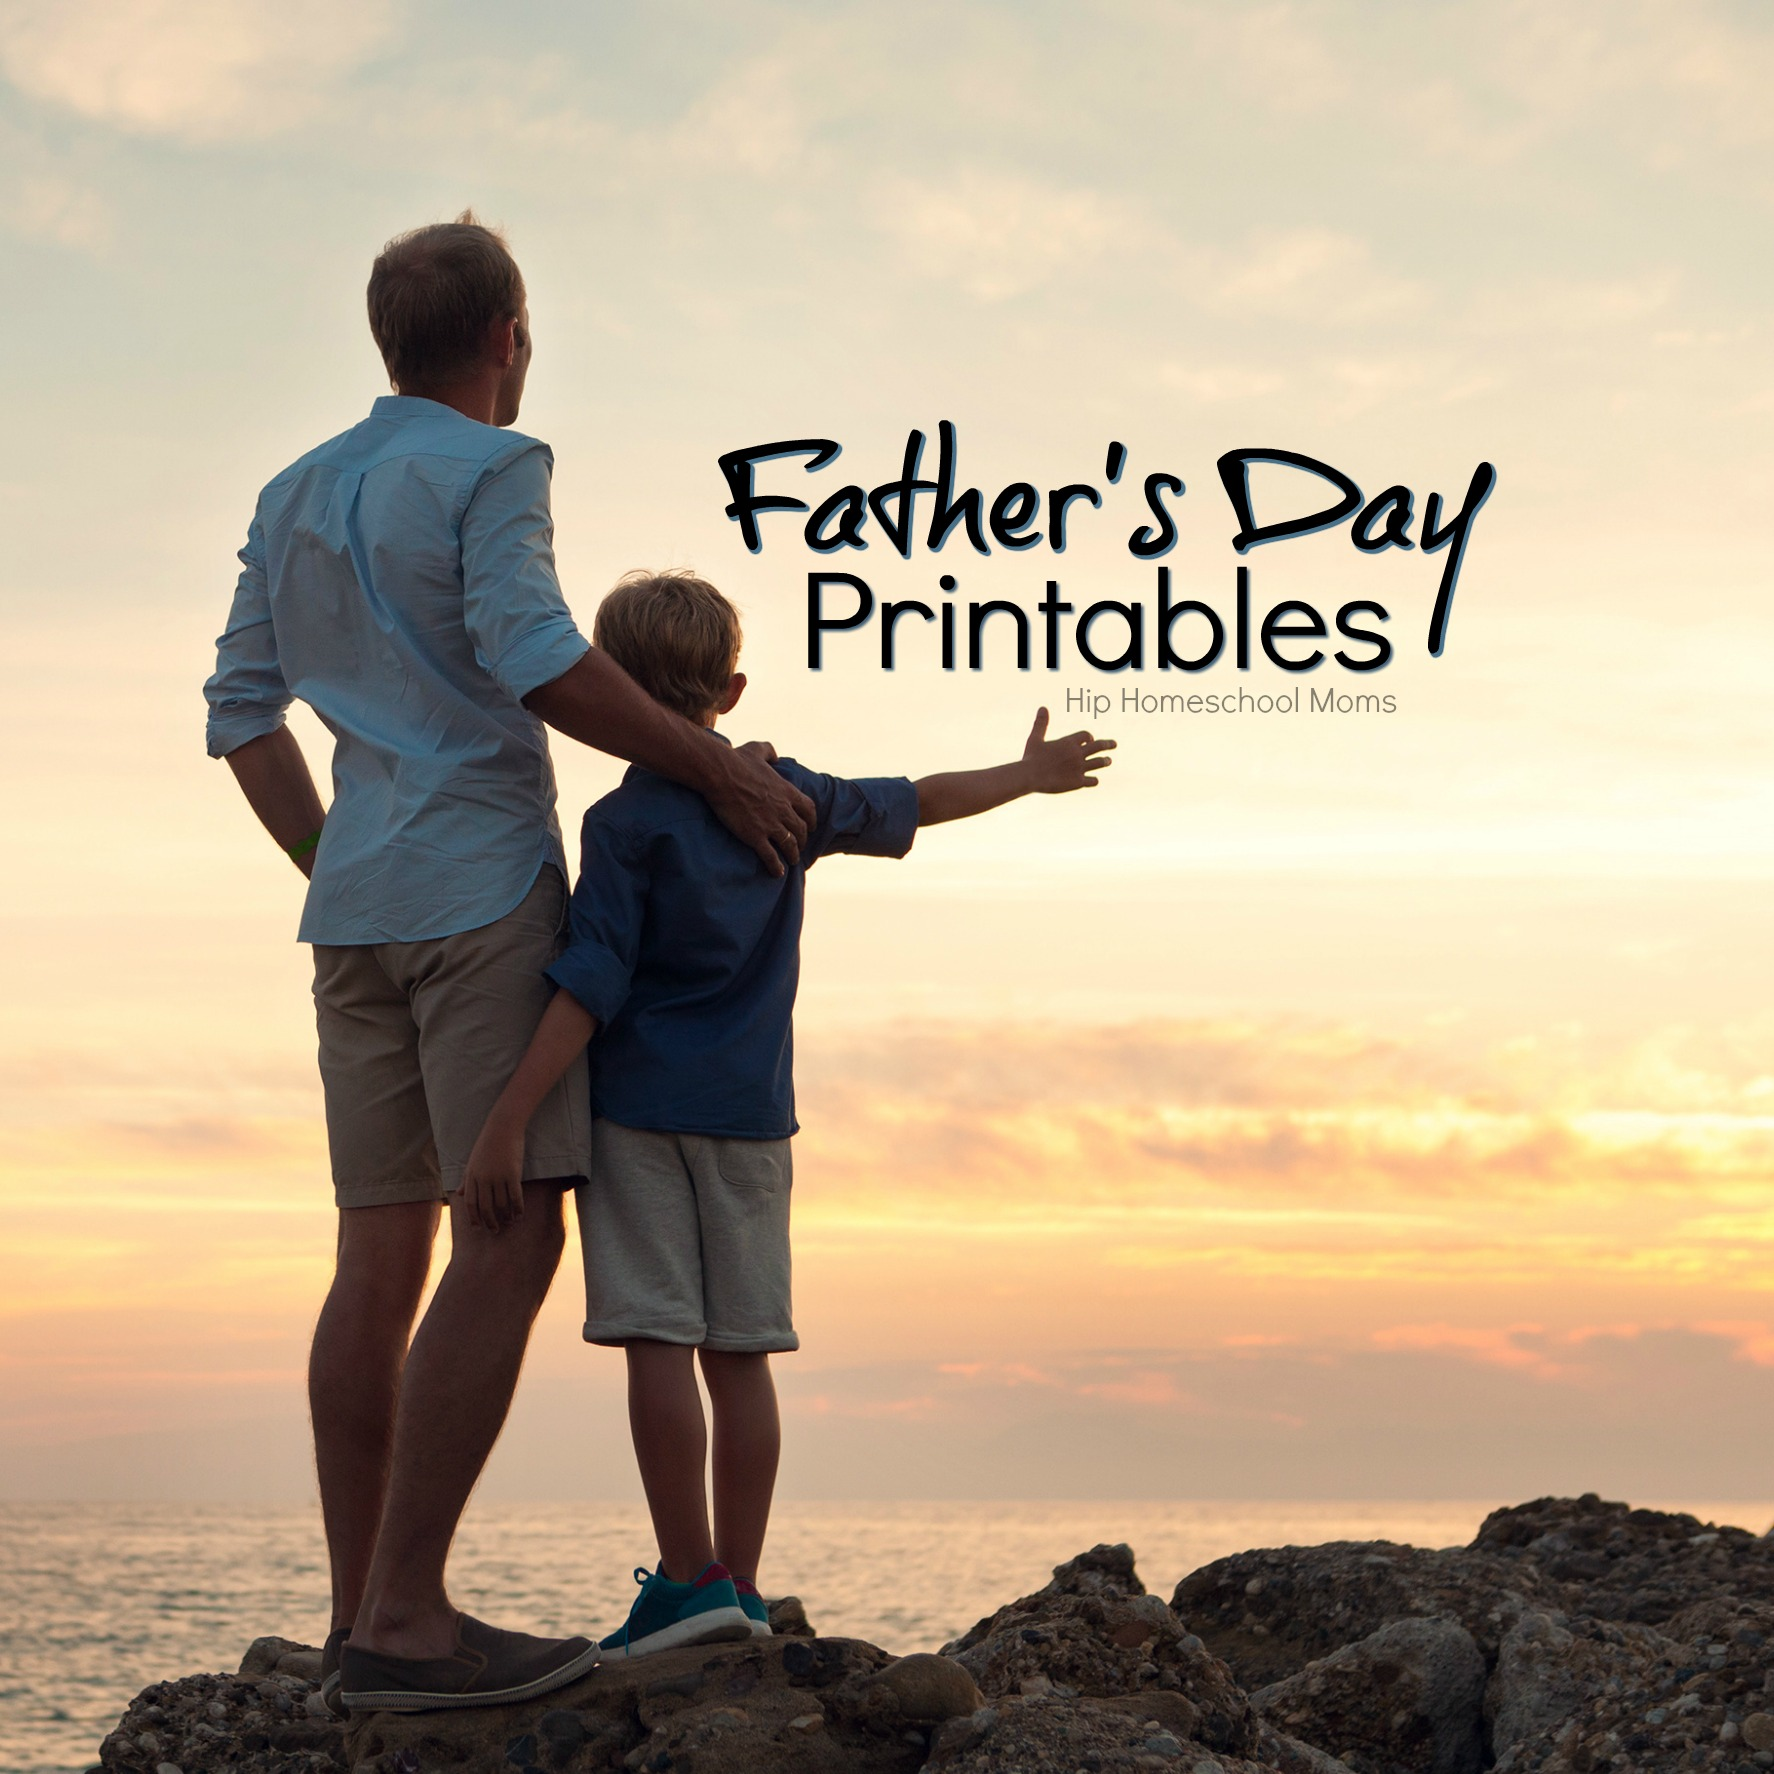 Father's Day Printables | Hip Homeschool Moms